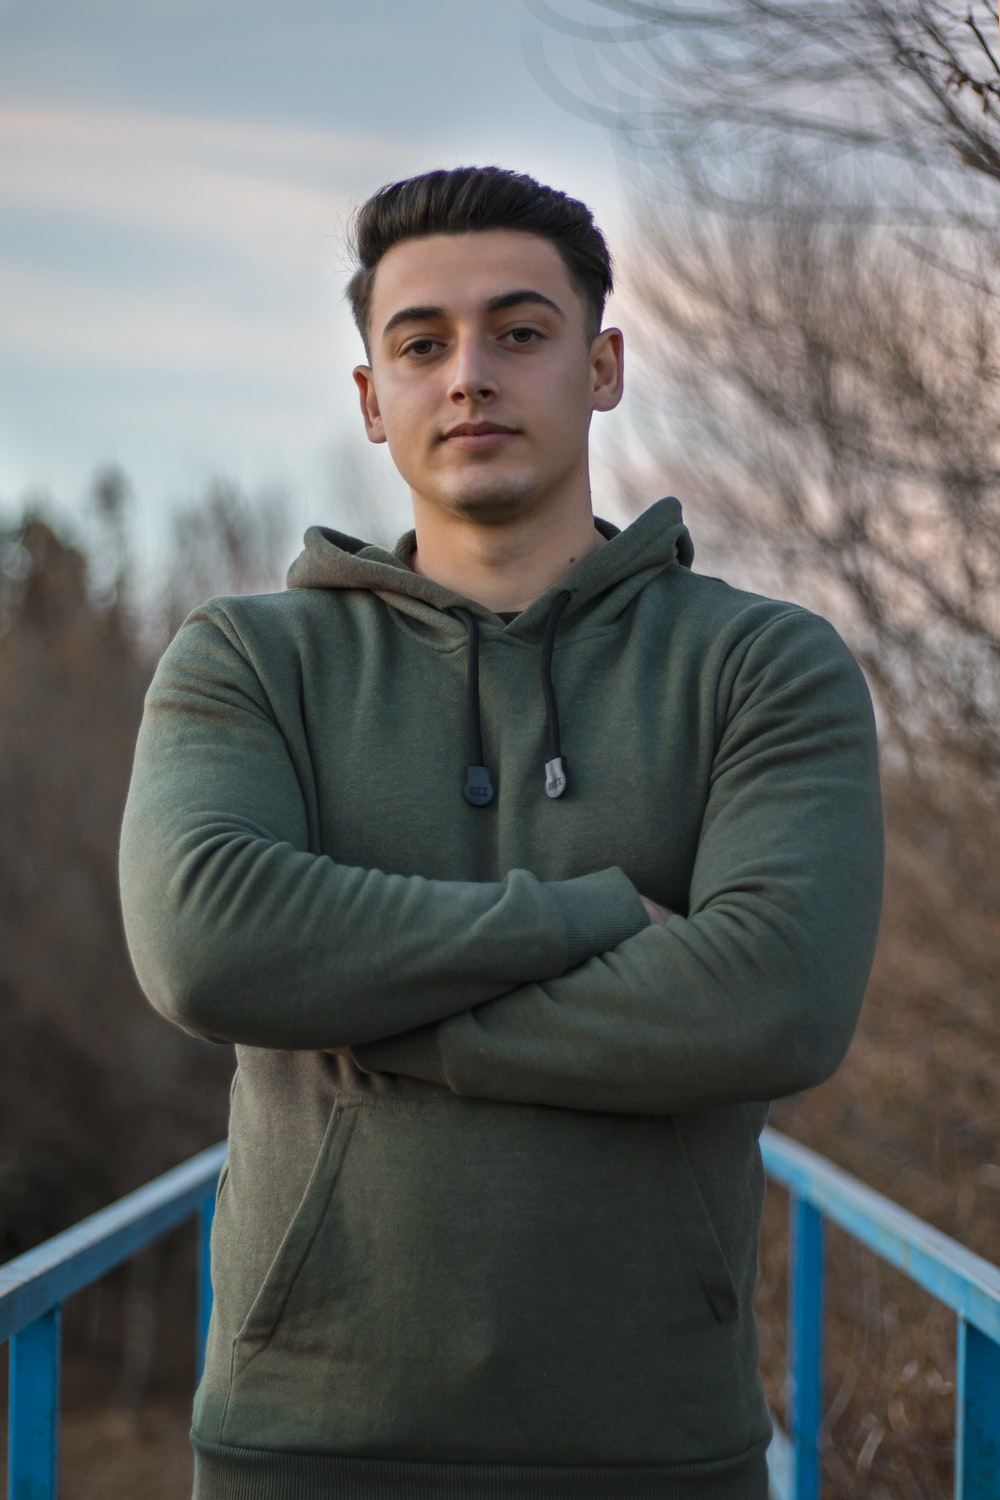 man in green hoodie standing on blue metal railings during daytime